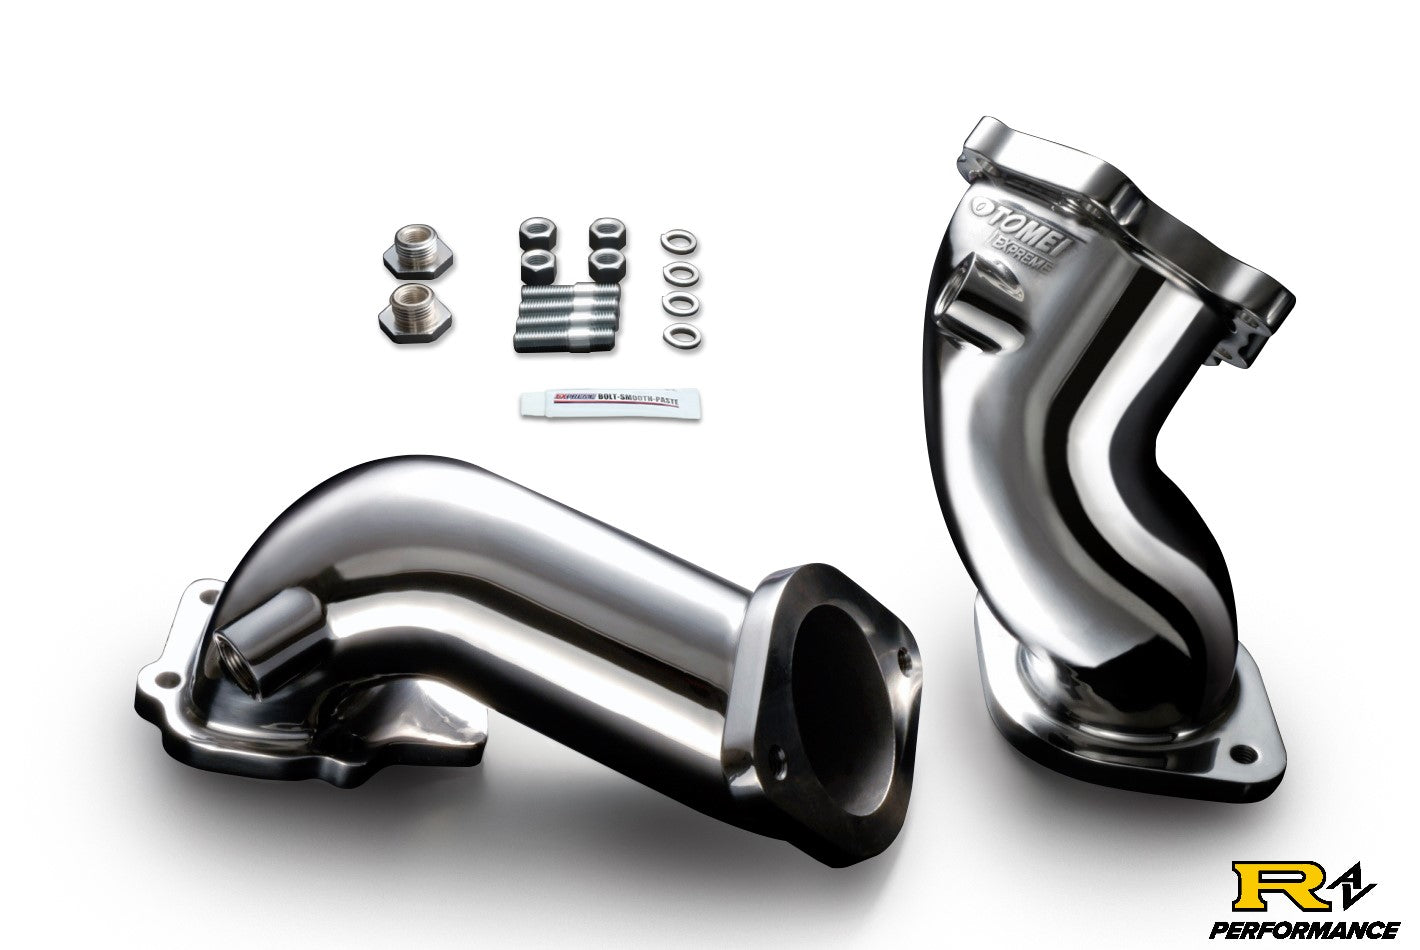 Tomei Expreme Turbine Outlet Pipe for Nissan Skyline R32 R33 R34 GT-R RB26DETT TB6020-NS05A